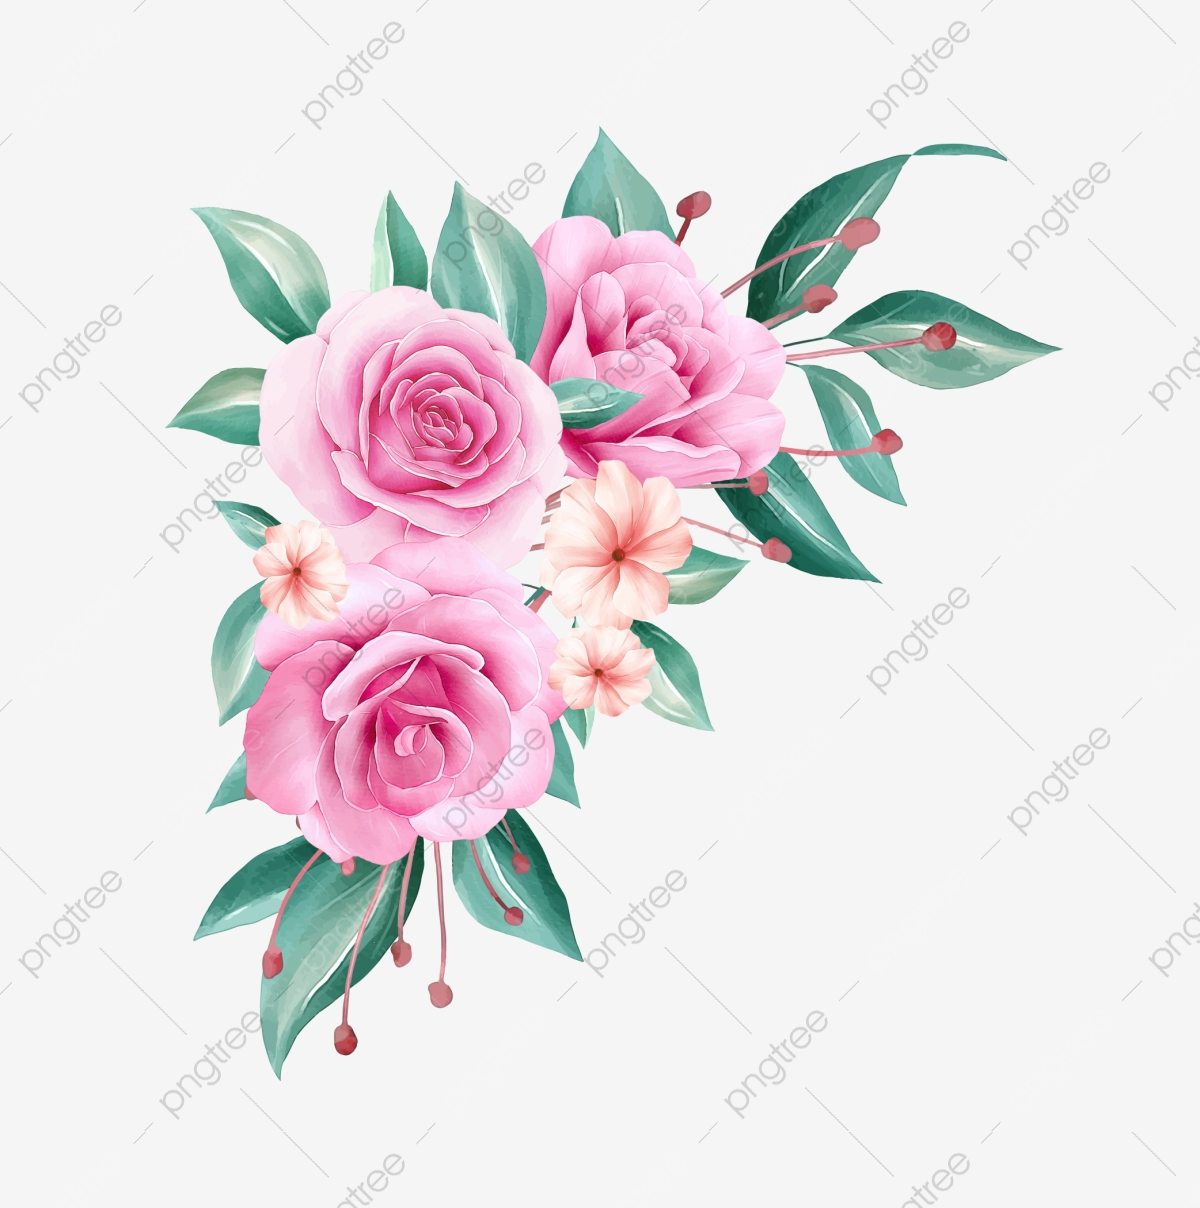 Watercolor Flowers Arrangement Illustration Of Peach Roses And